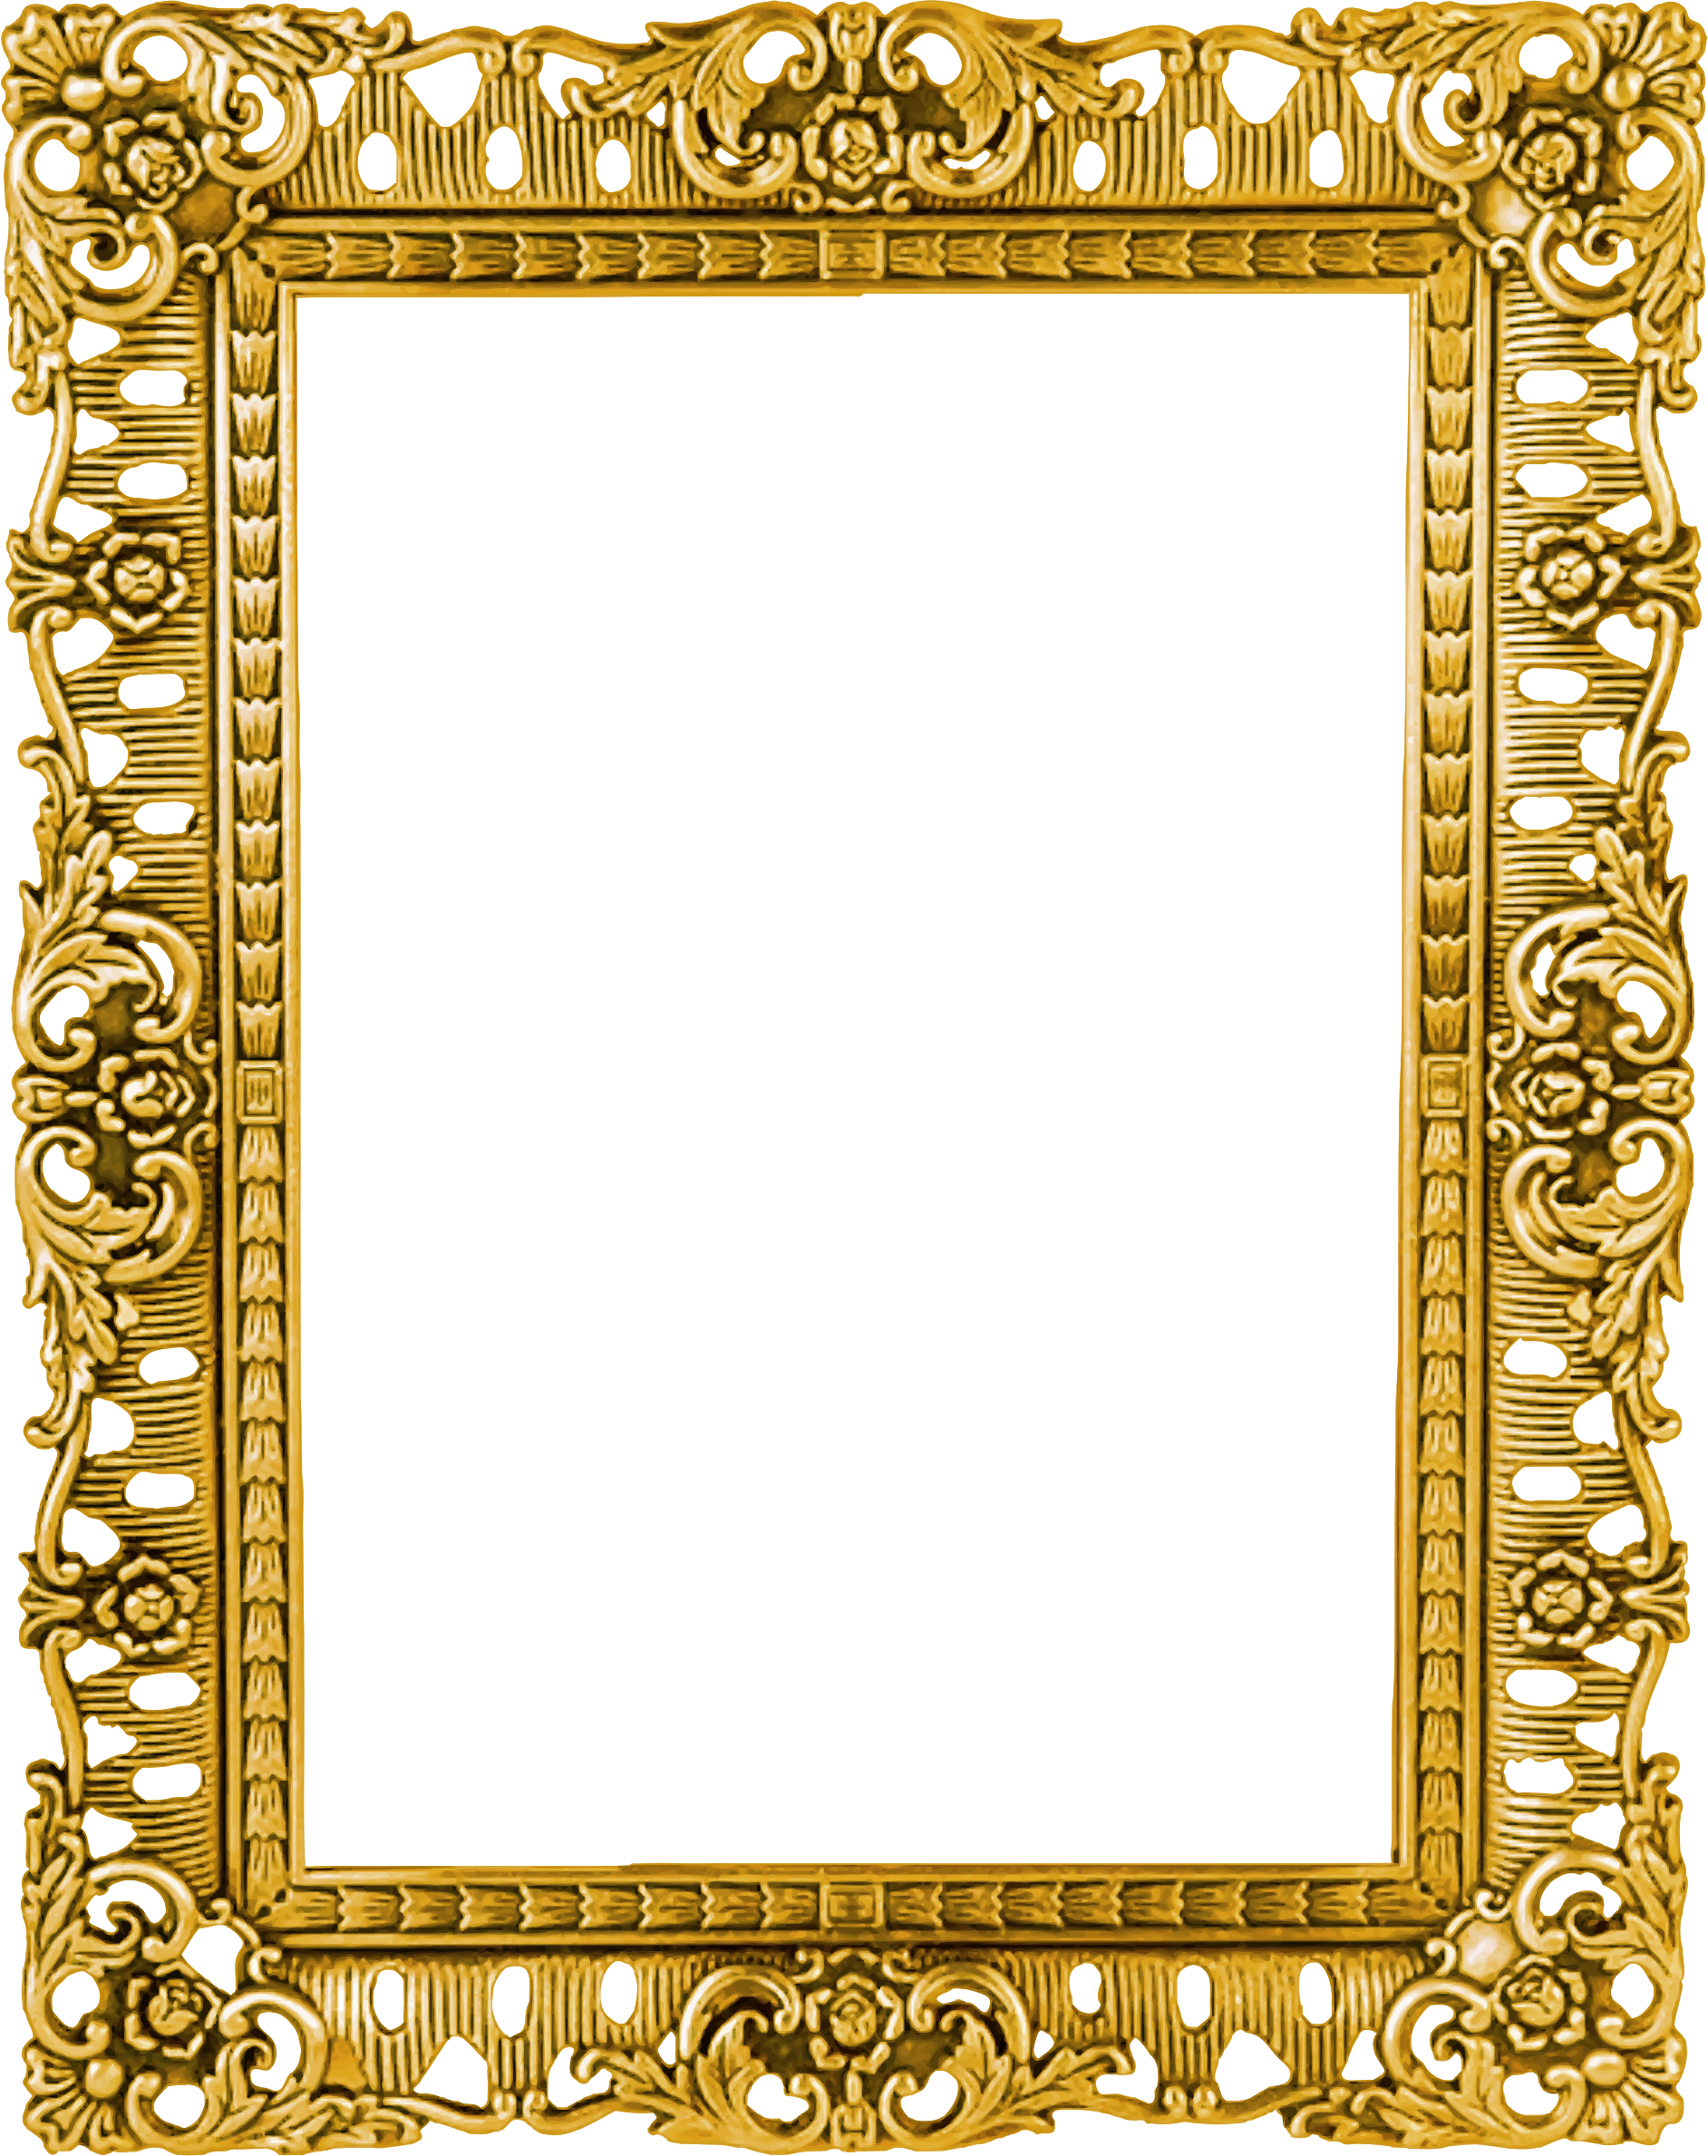 Ornate frame 40 (version 2) by Firkin